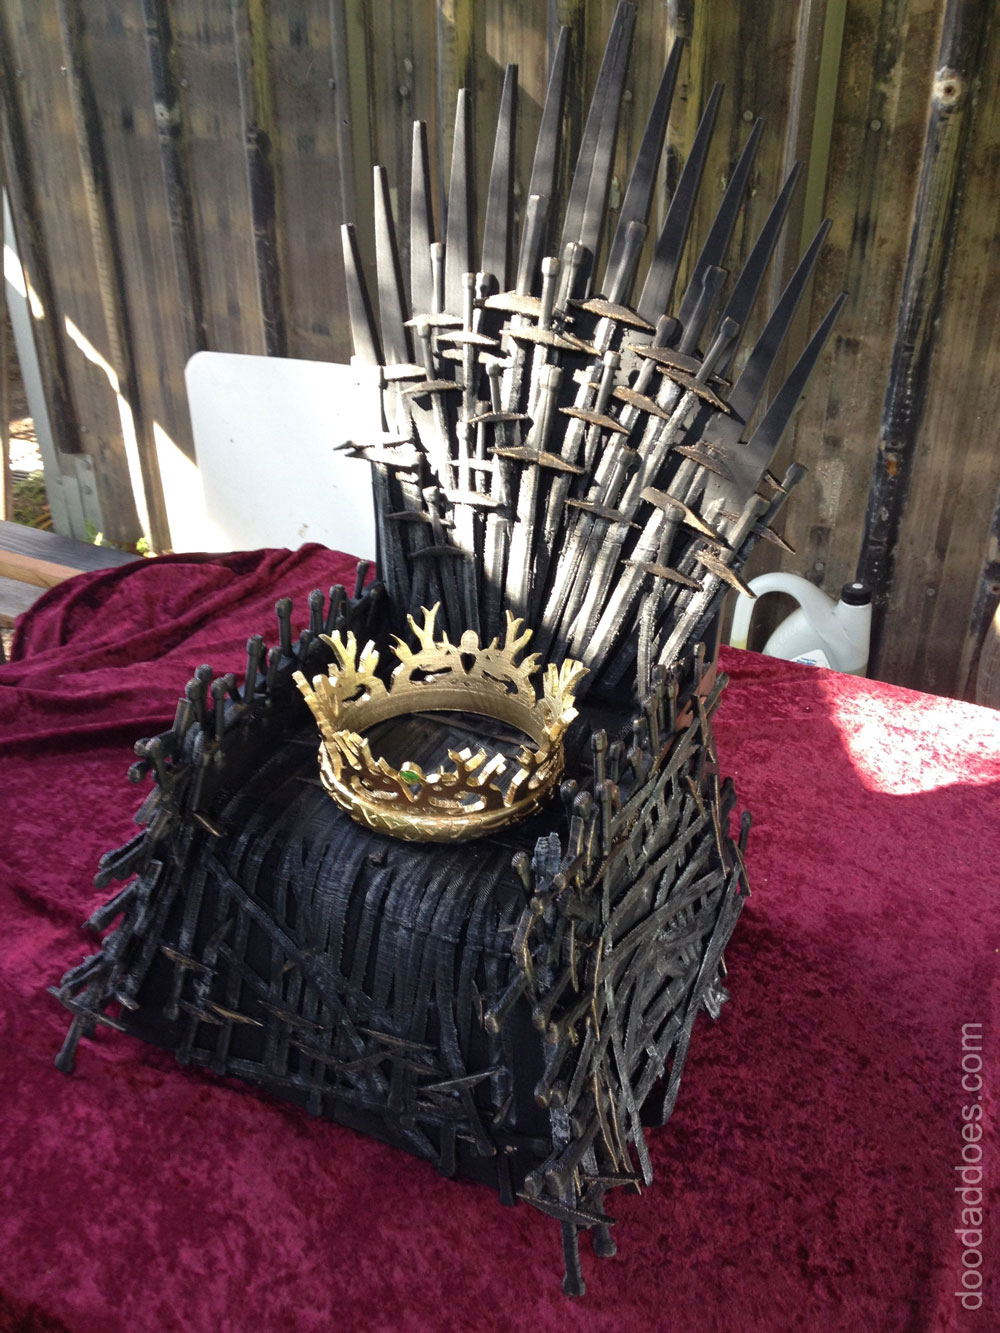 D Printing Exhibition Europe : Game of thrones iron throne gets d printed into mini